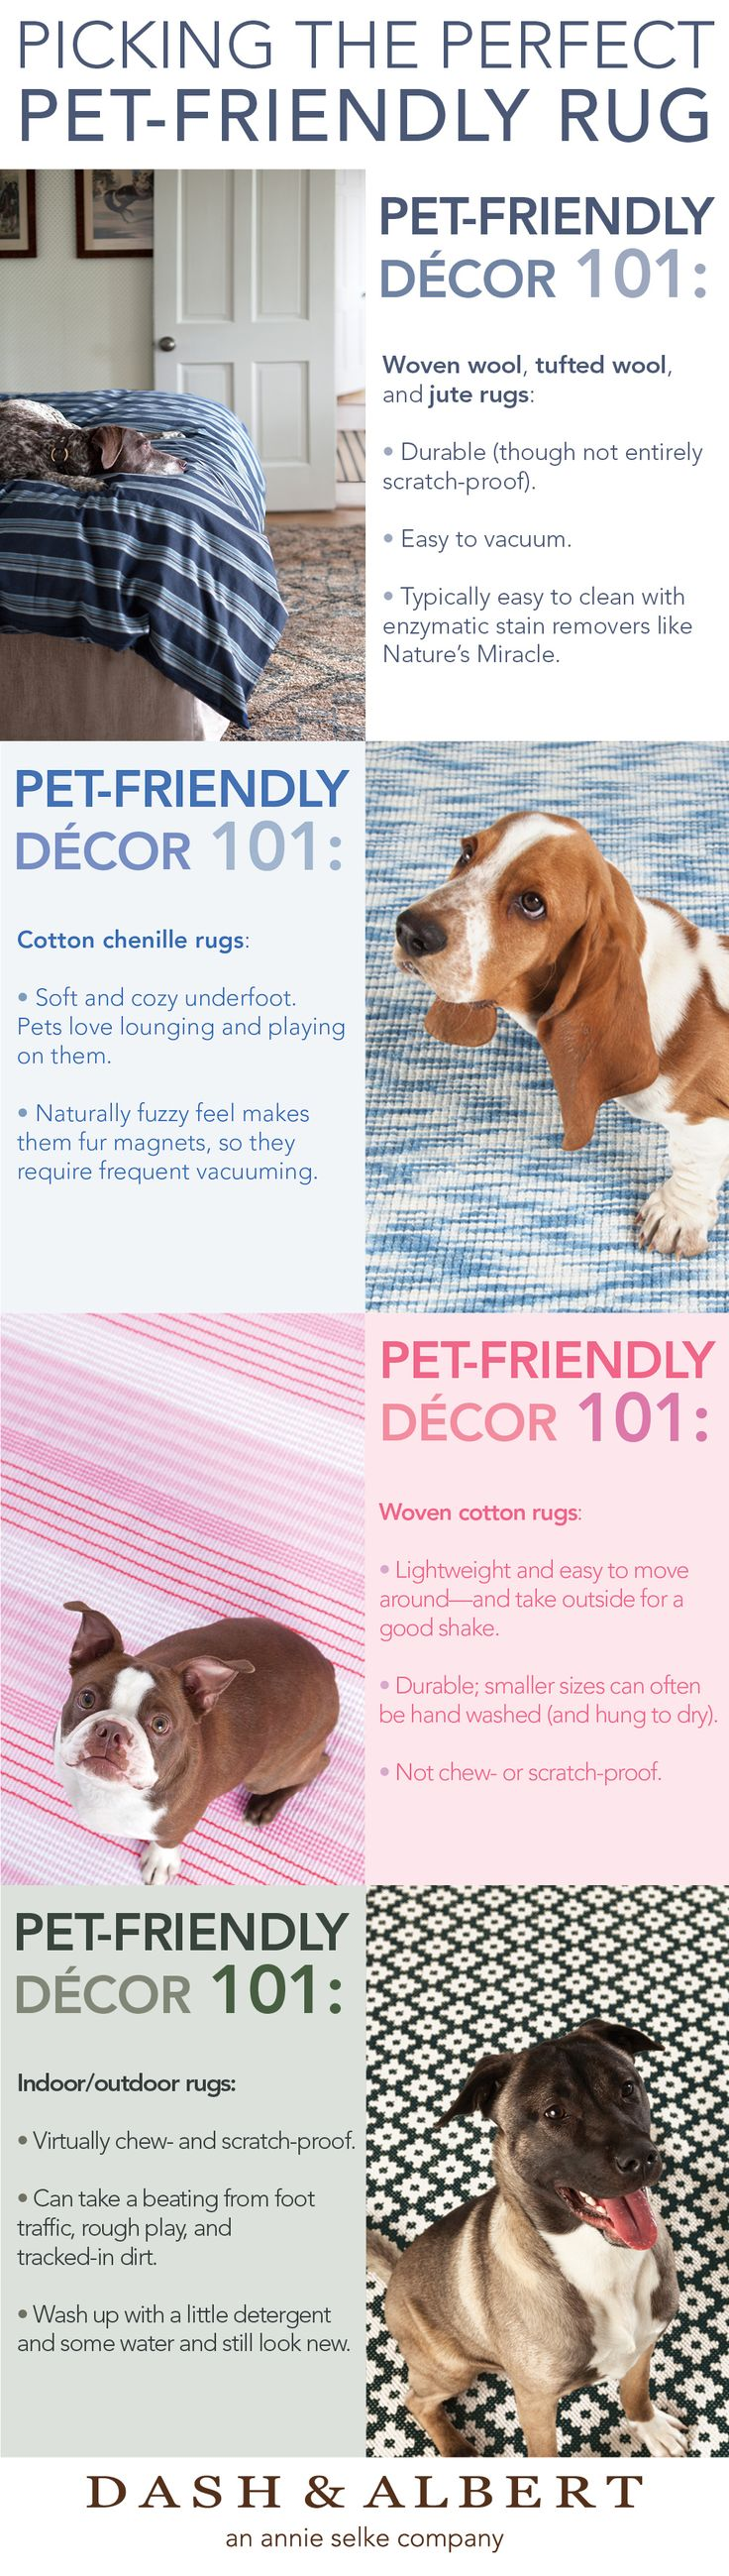 Pet-Friendly Decor 101. What type of rug would your pet prefer?